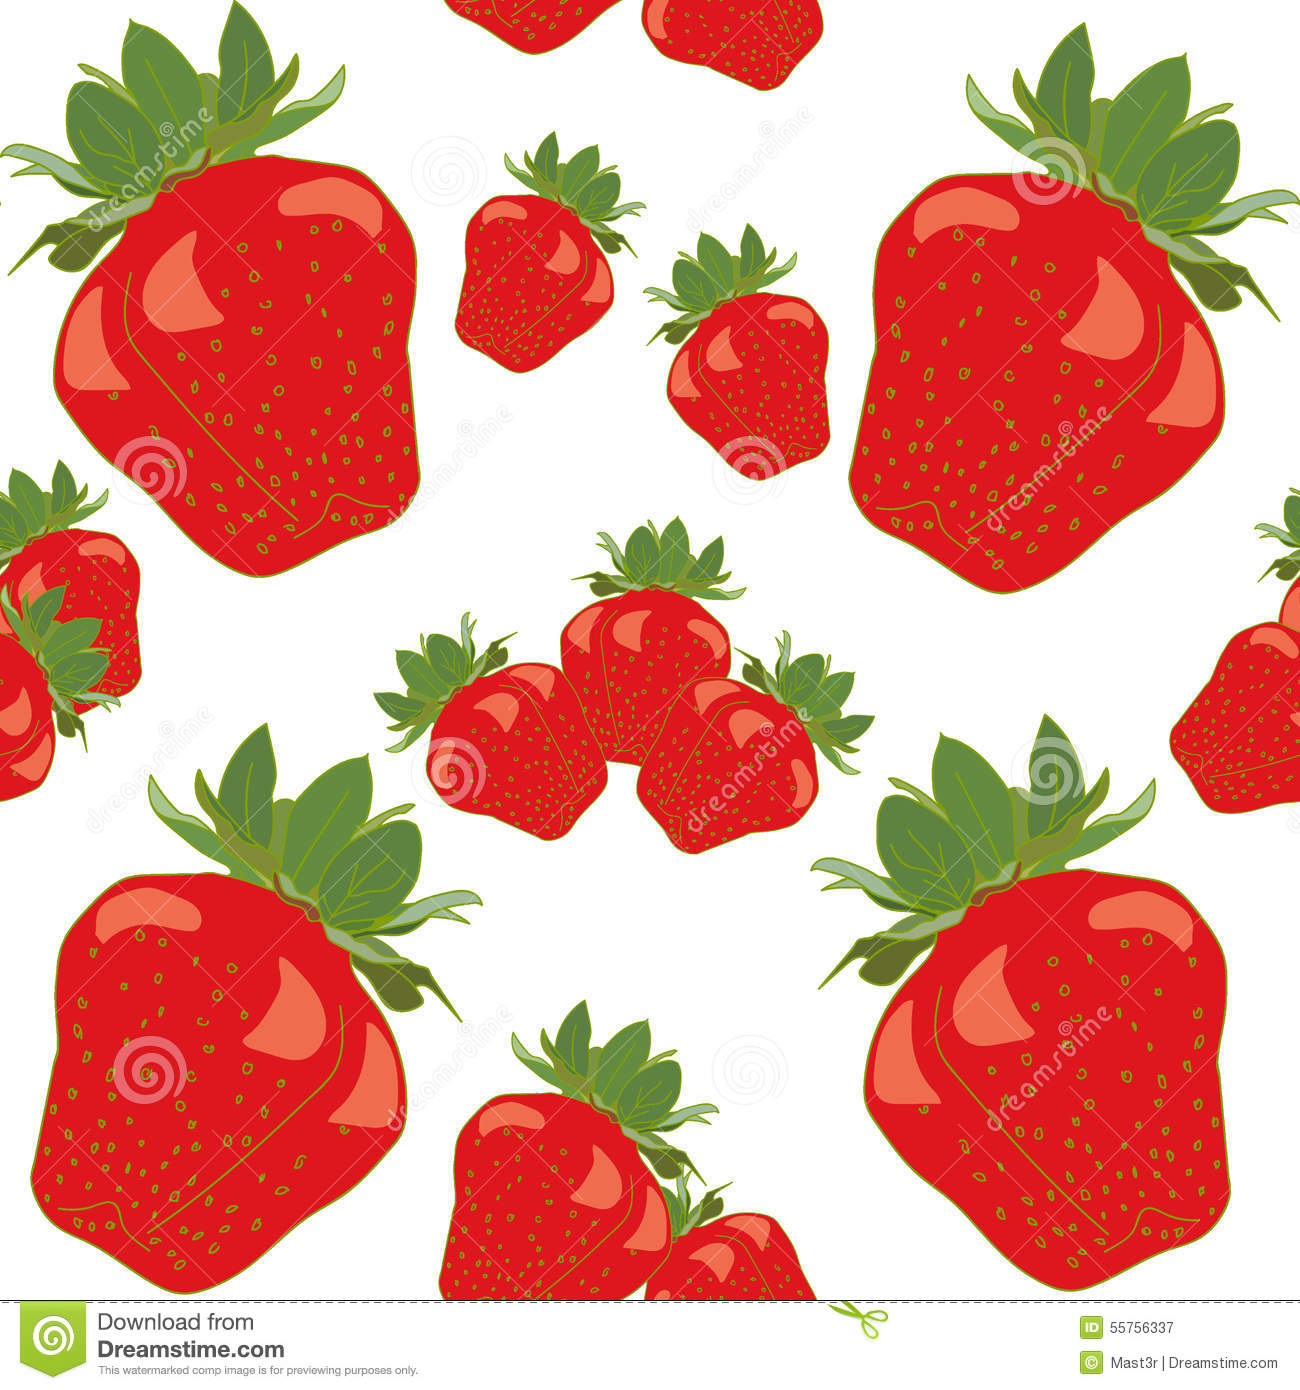 Erdbeerrote Frucht Berry Colorful Seamless